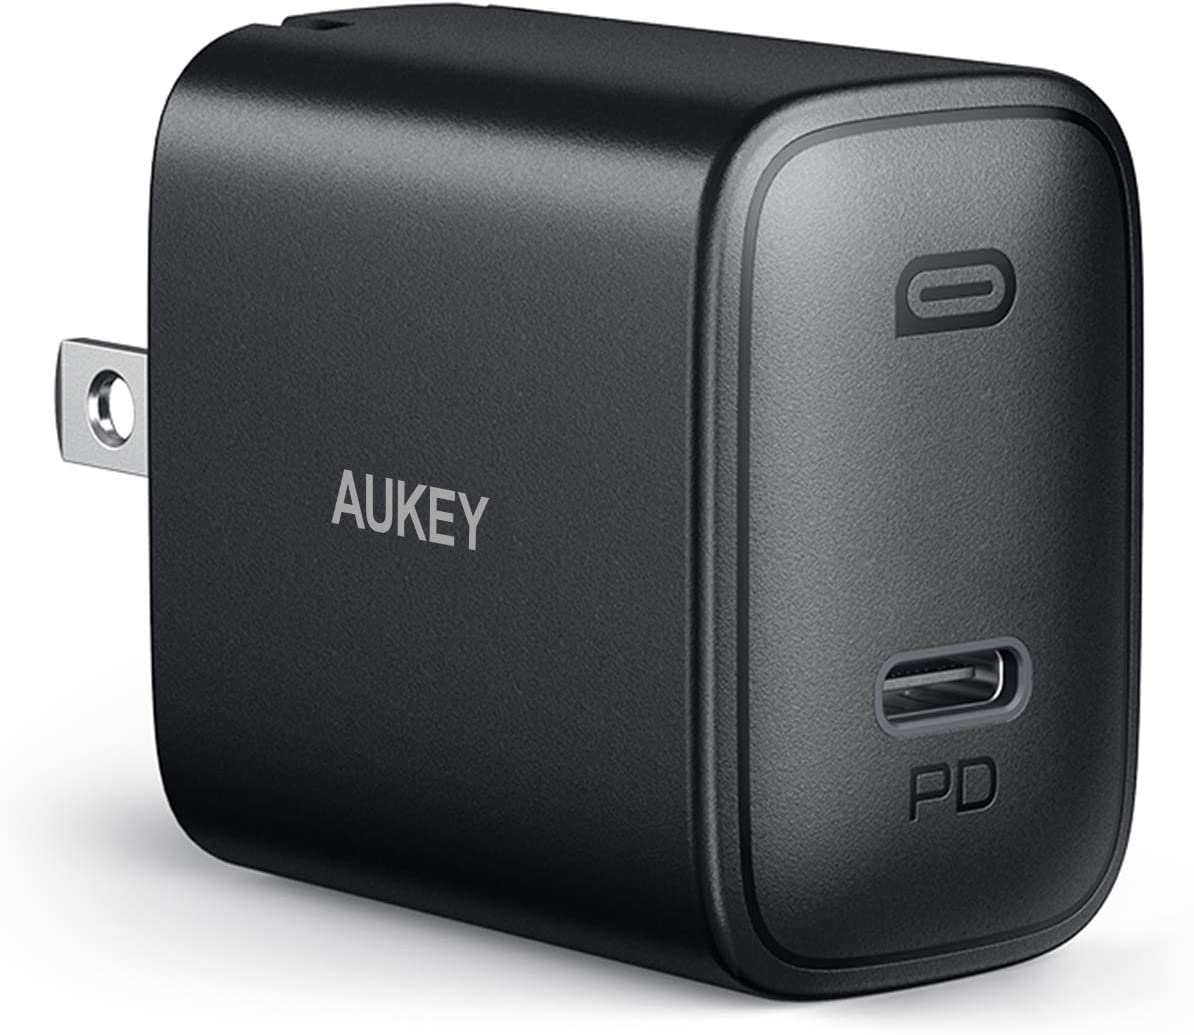 iPhone Fast Charger, AUKEY Swift 18W USB C Charger for iPhone 12/12 Mini/12 Pro Max with Foldable Plug &Power Delivery 3.0,Compact PD Charger Adapter USB C Wall Charger for iPad Pro/AirPods Pro/Switch